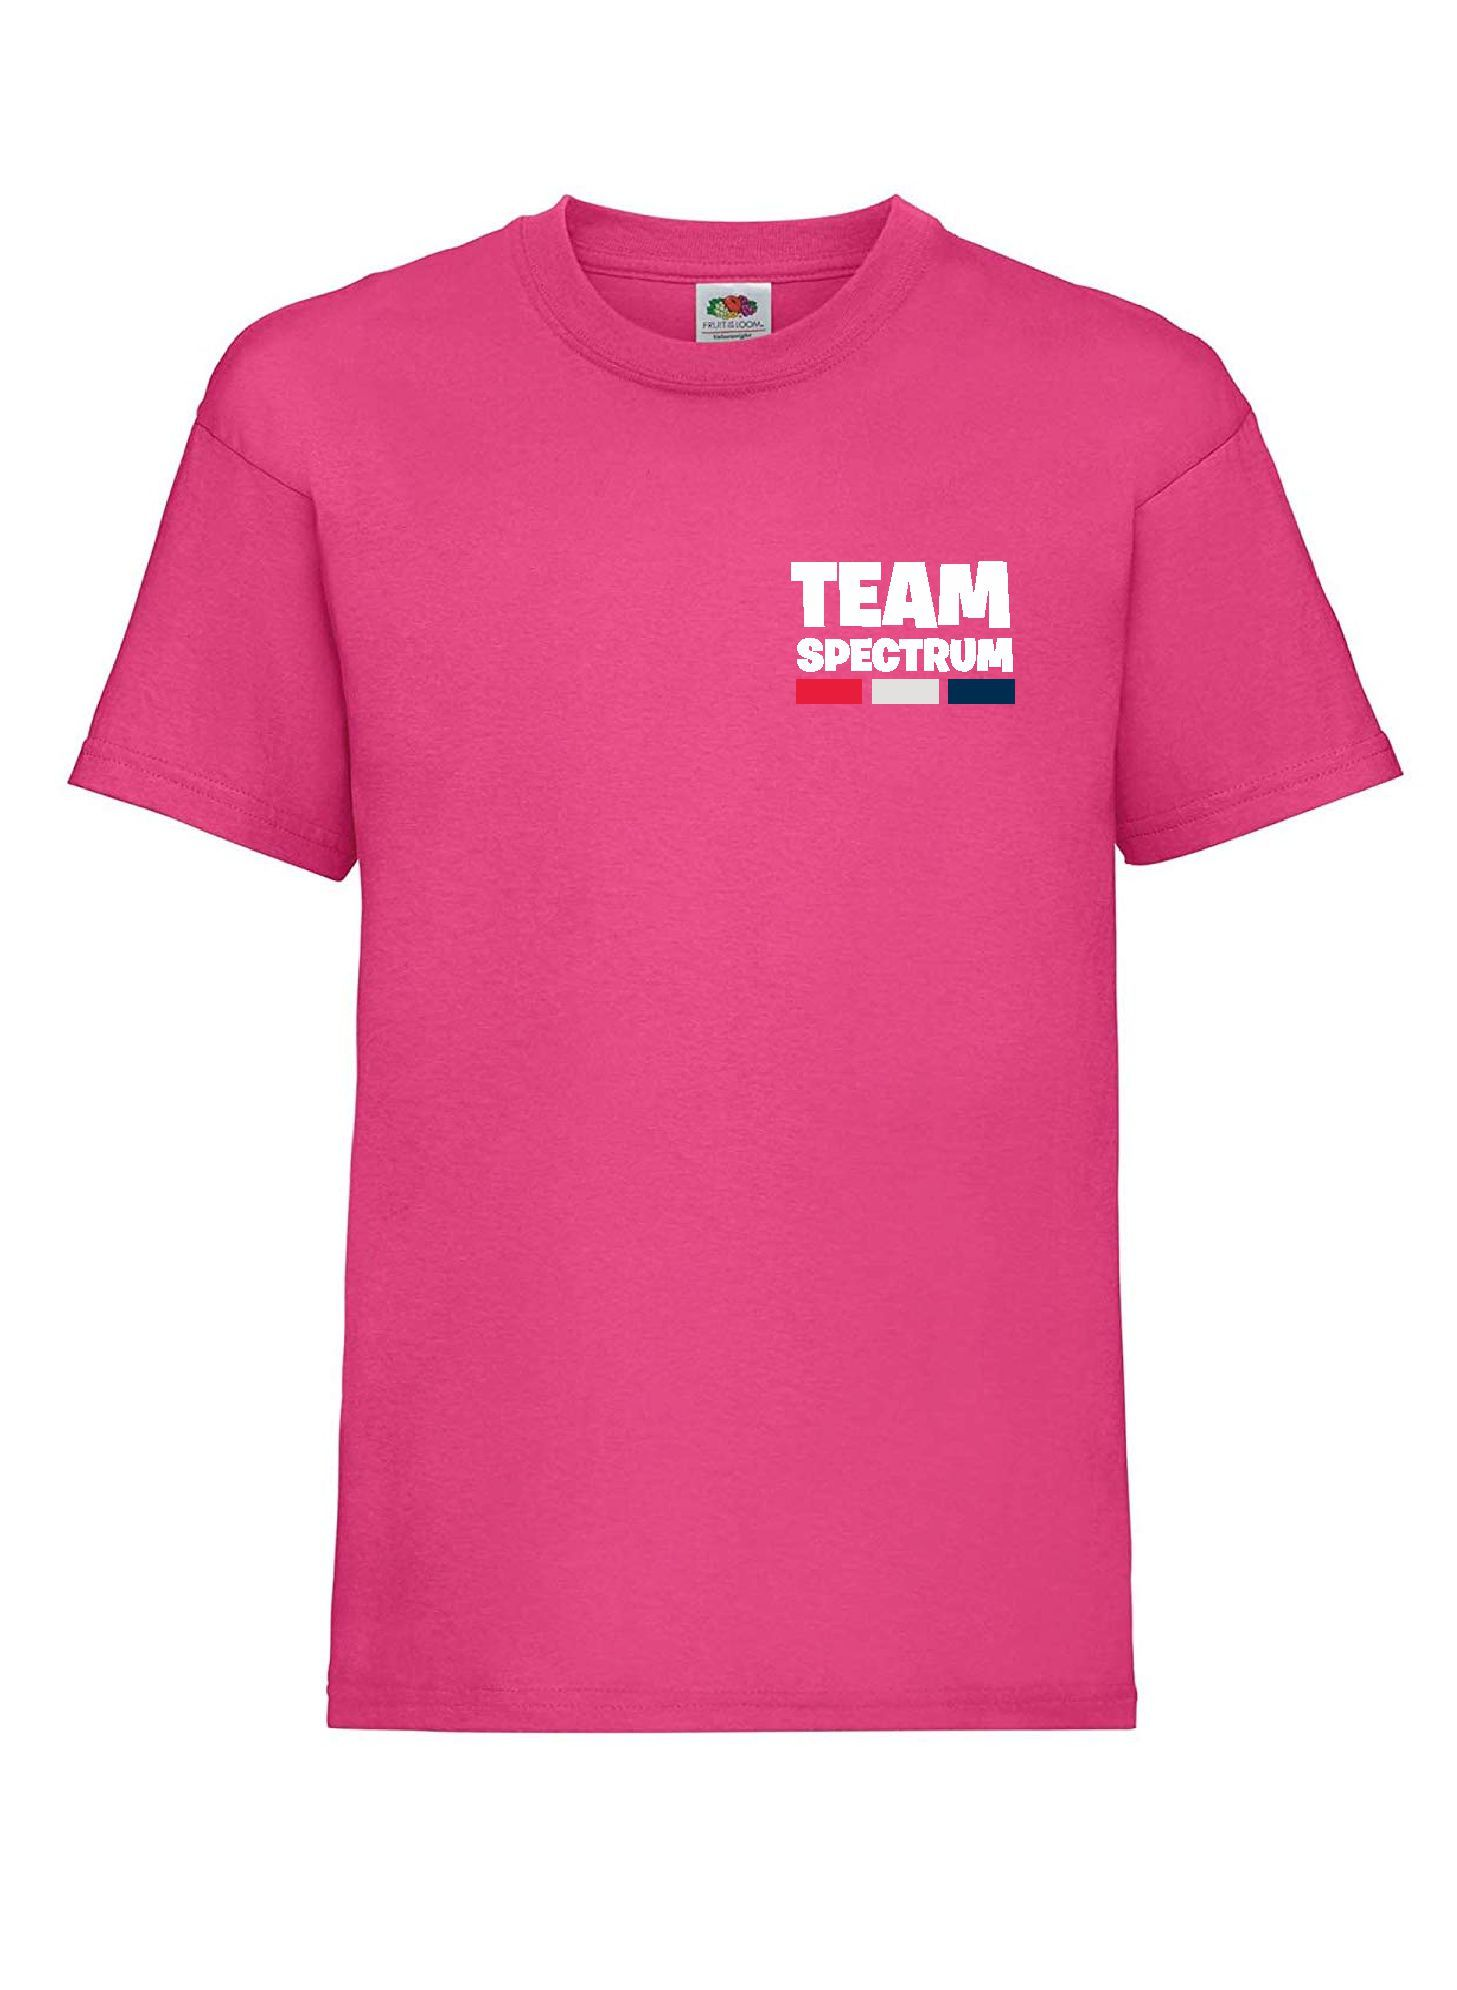 Team Spectrum - Tee (Kids)